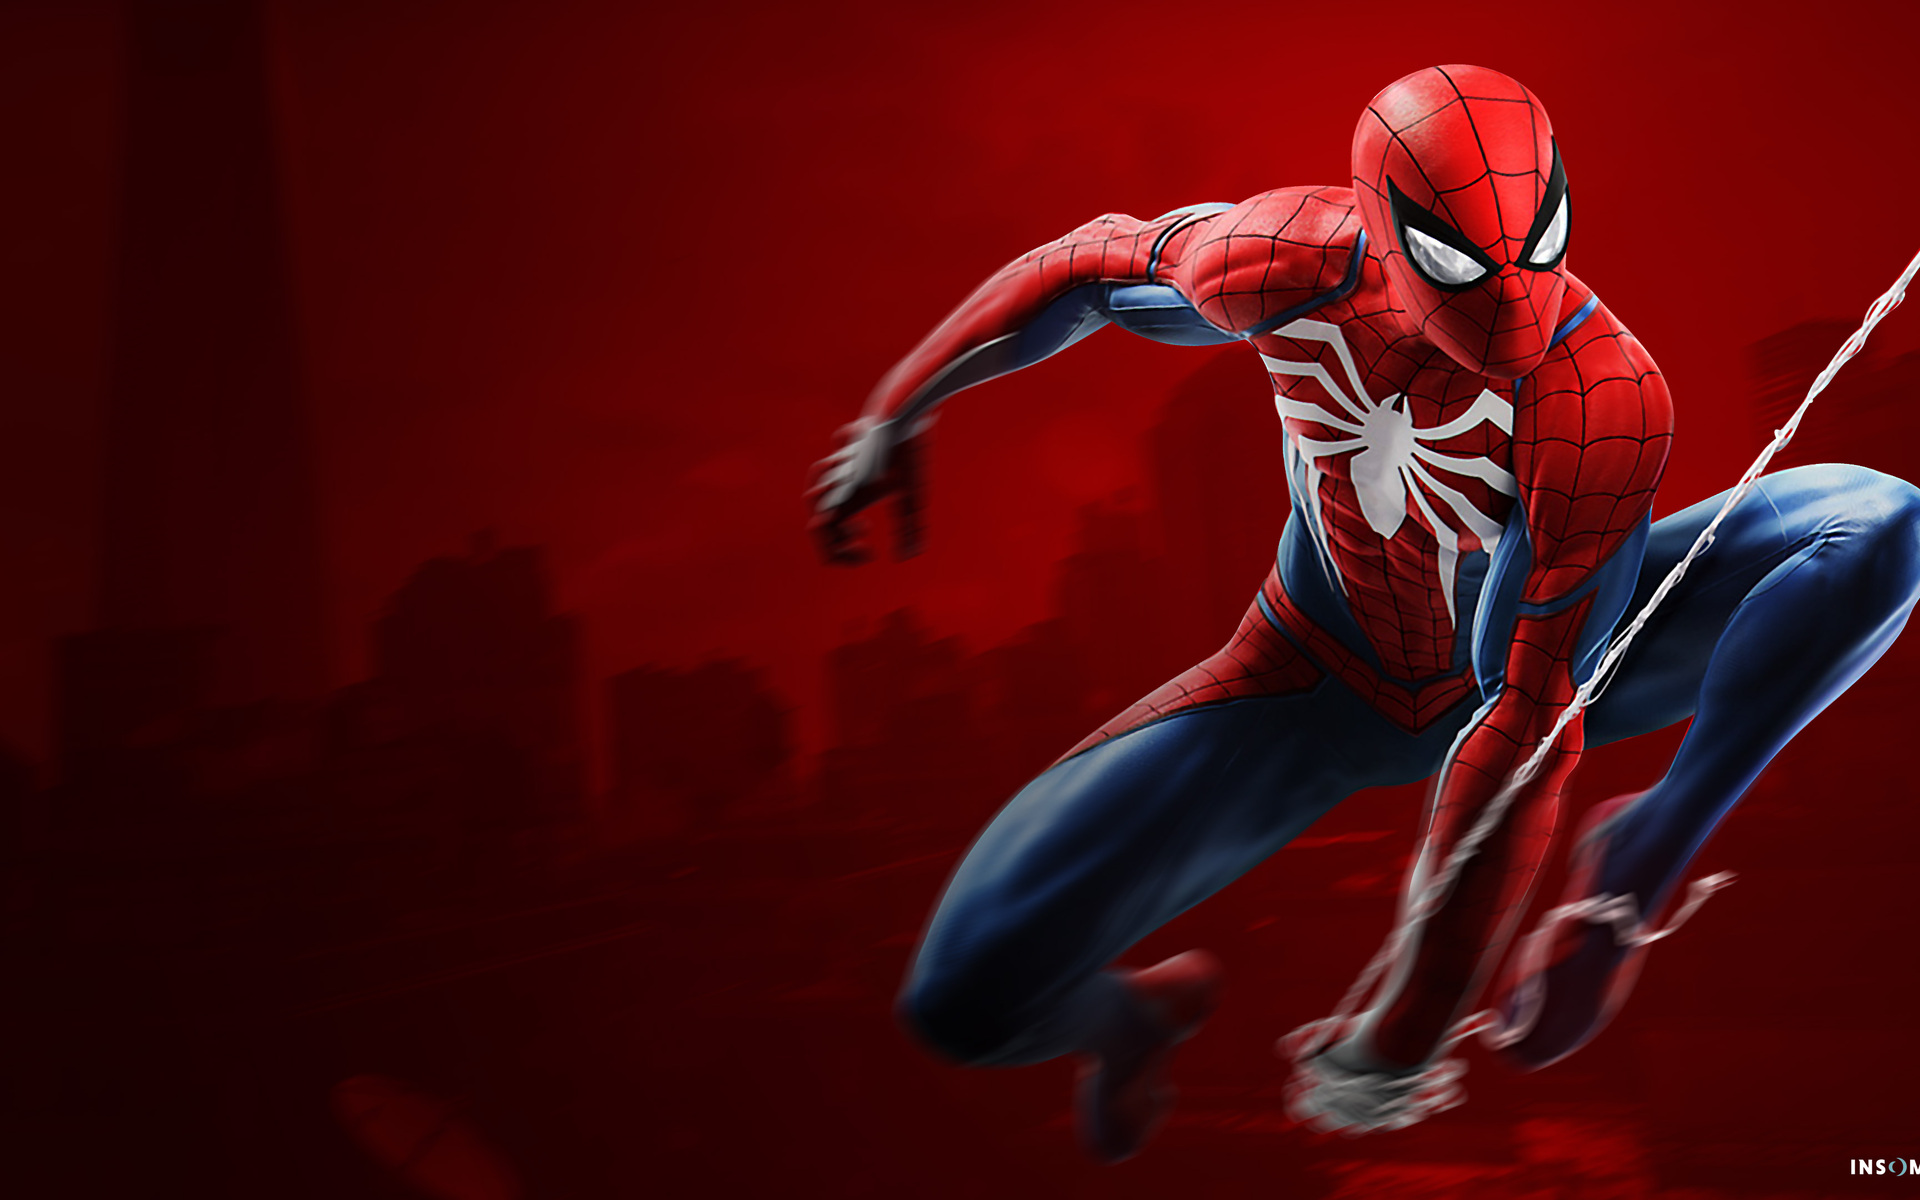 Spiderman Live Wallpaper Hd: 1920x1200 Spiderman Ps4 4k 1080P Resolution HD 4k